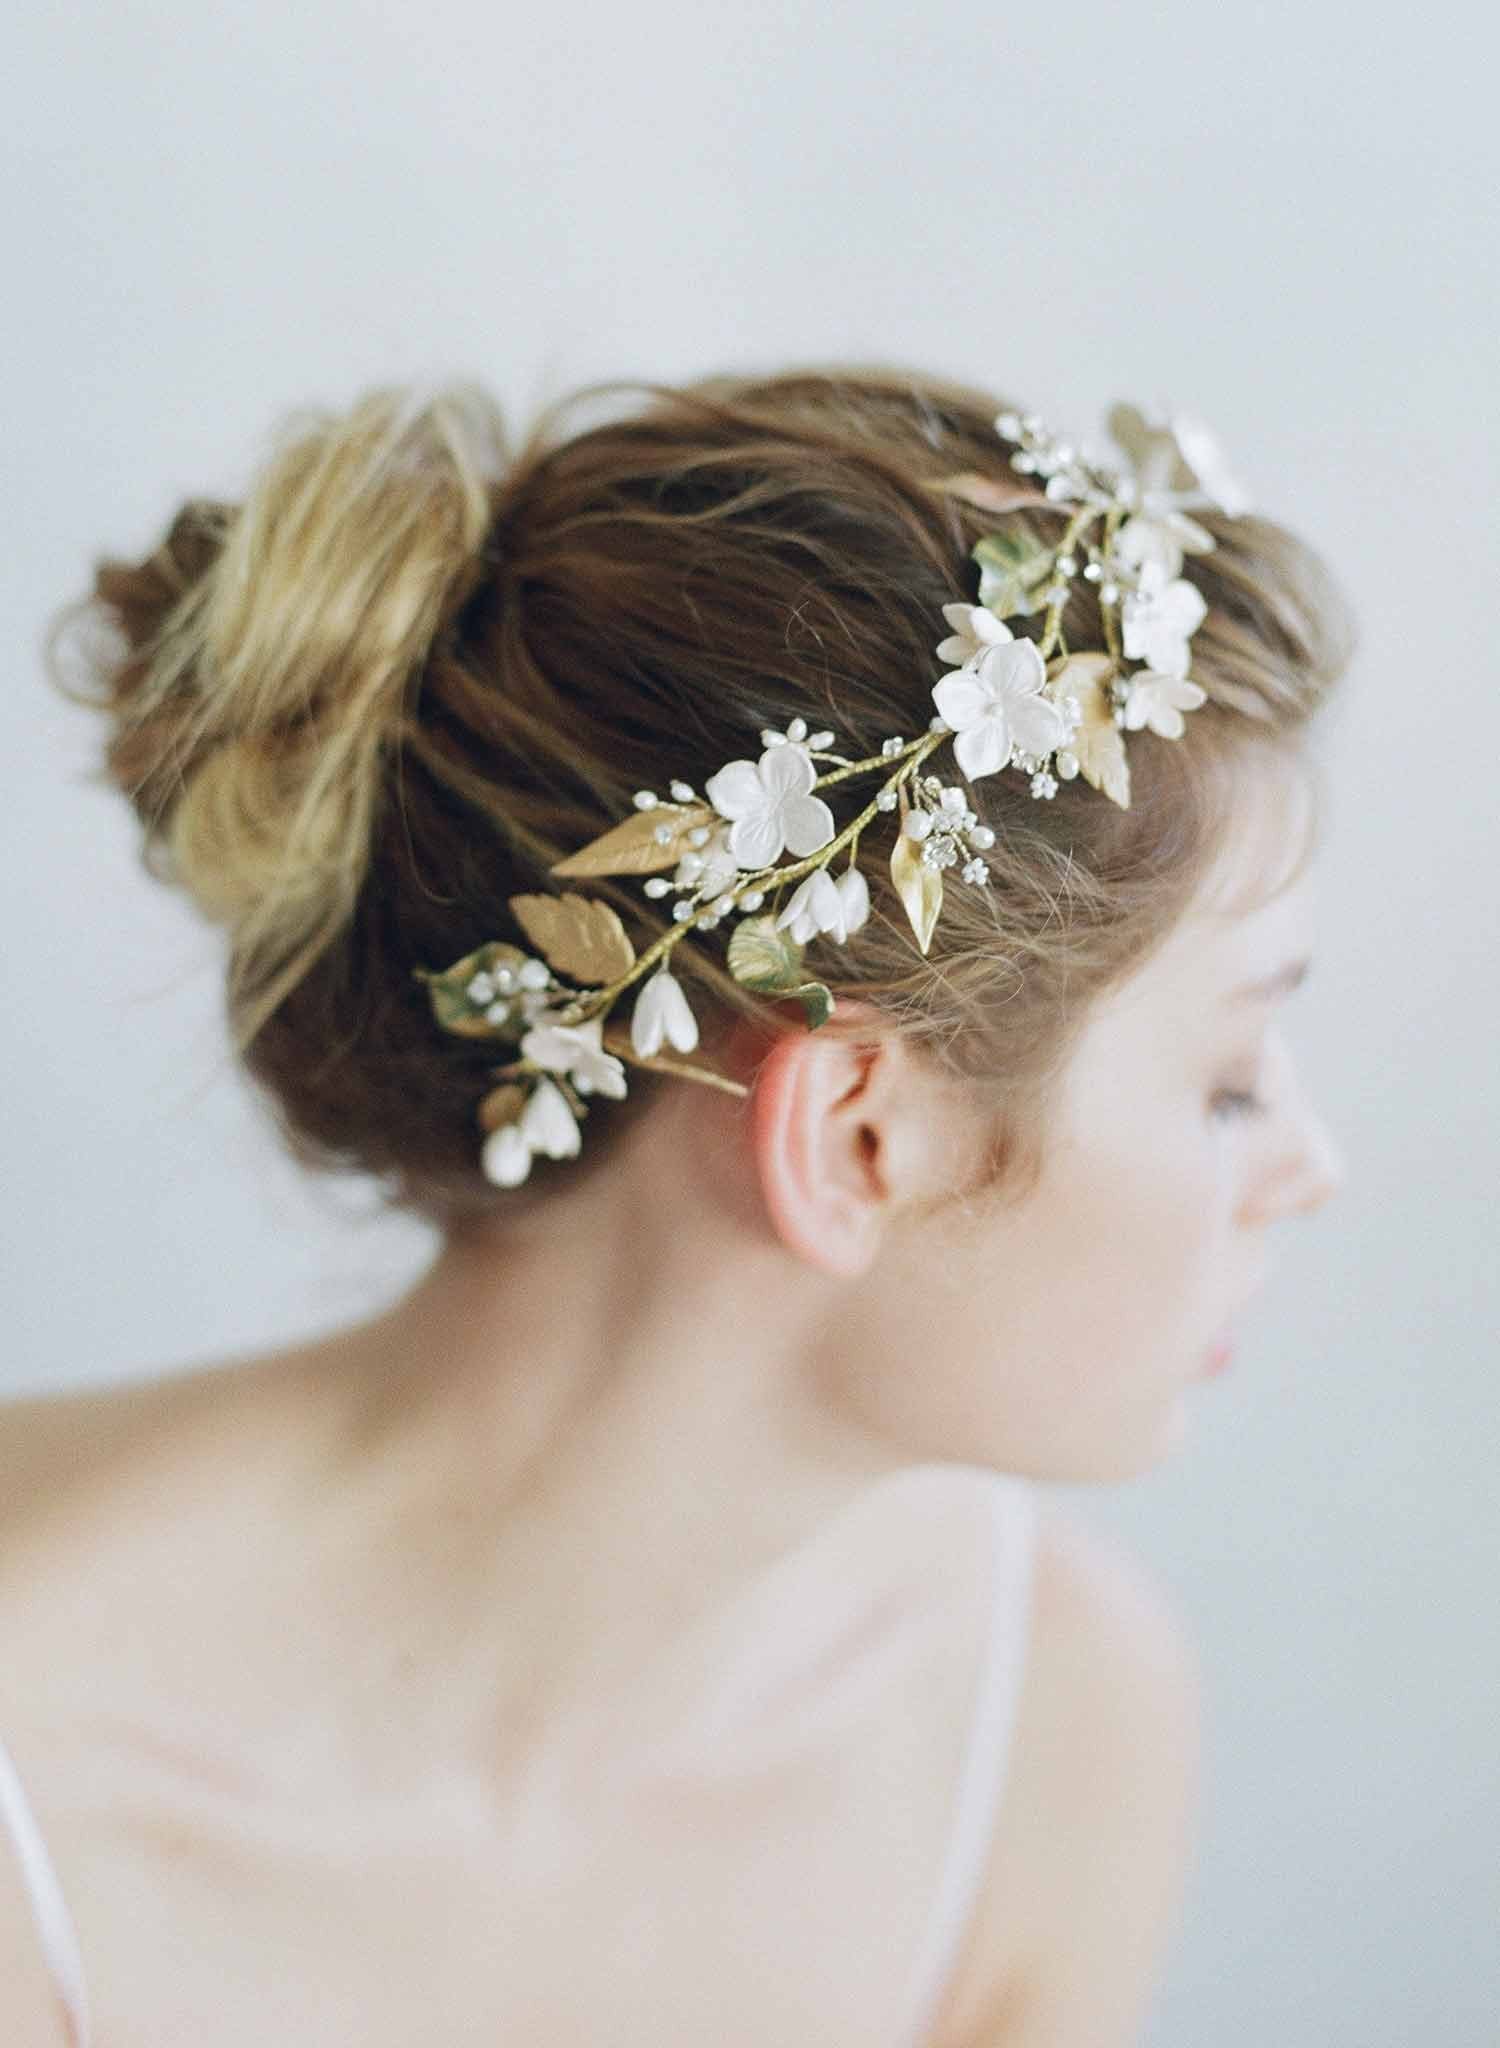 Floral garden headpiece, clay flowers by Twigs and Honey